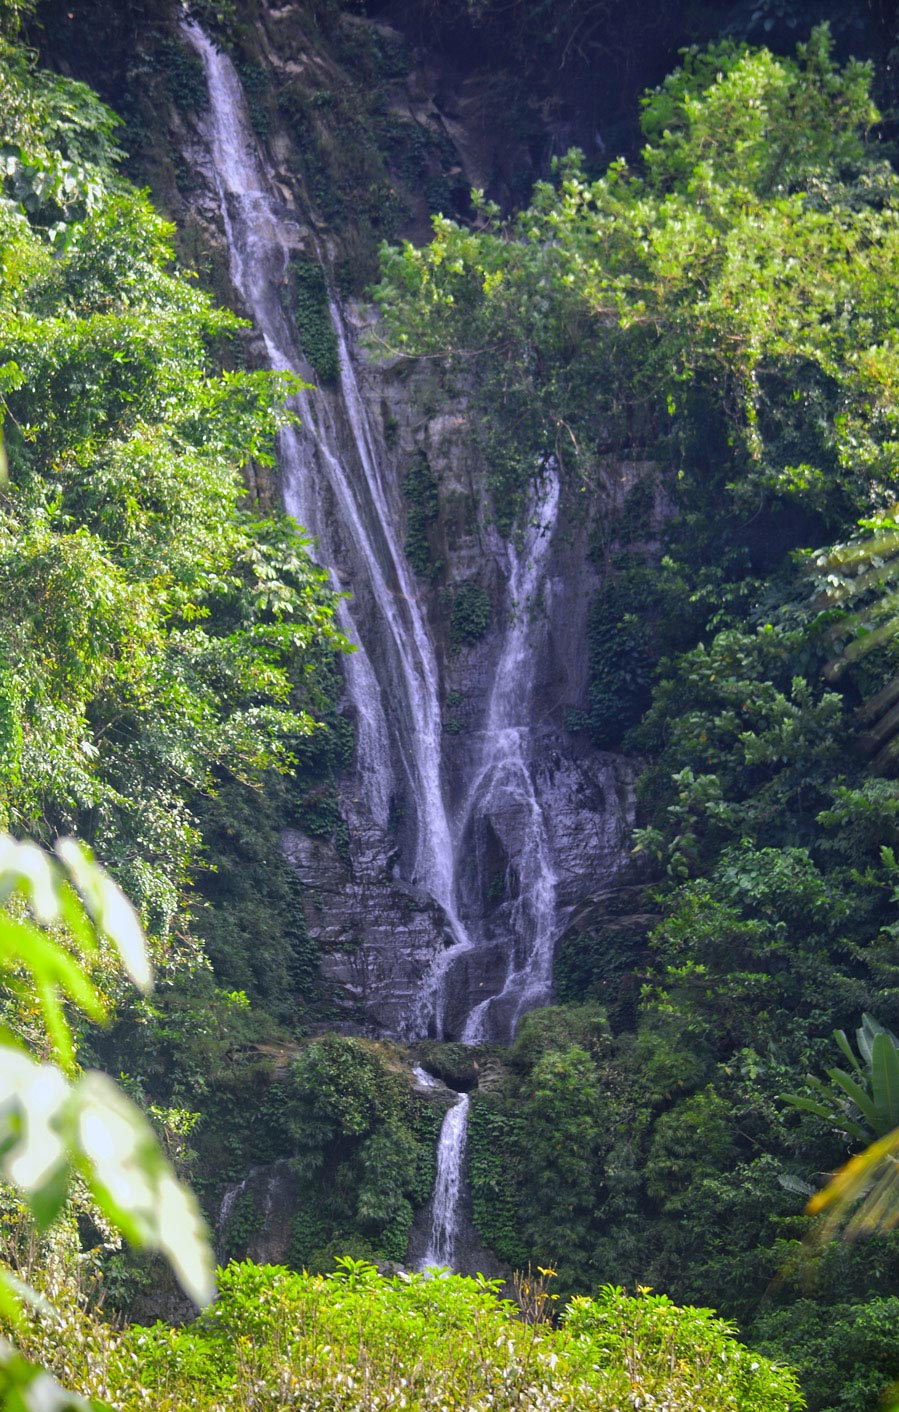 The Tallest Waterfall in Negros Oriental